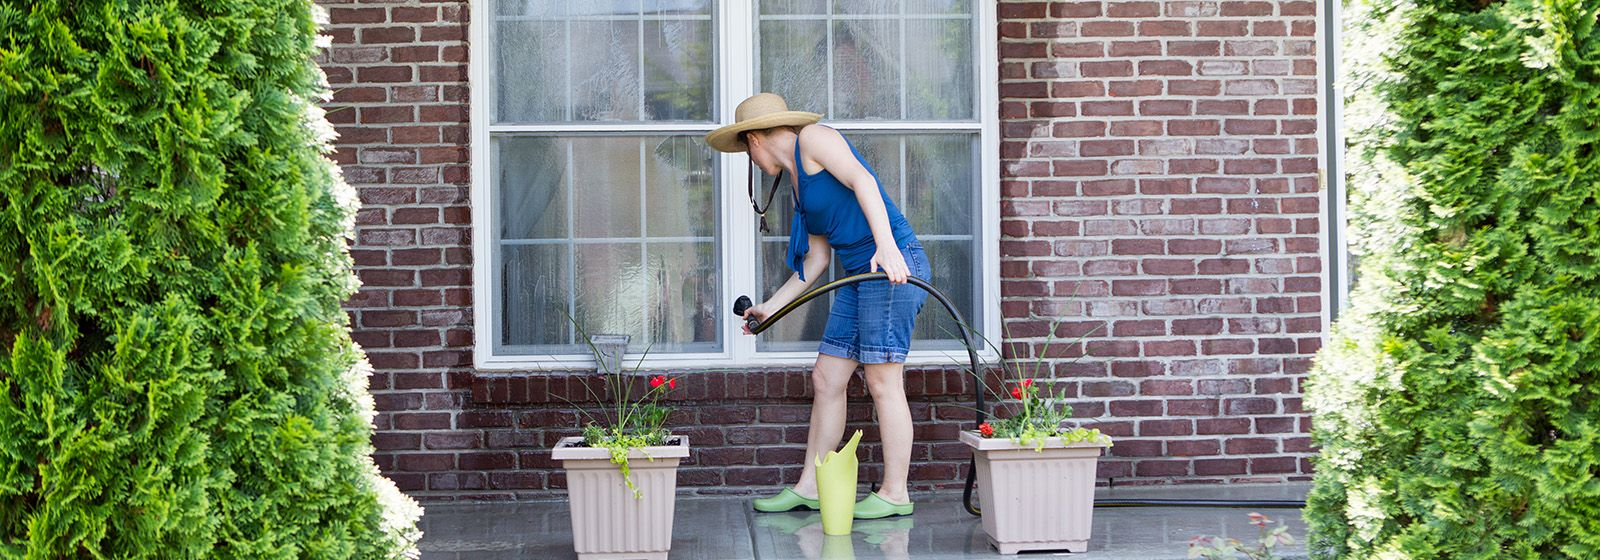 4 outdoor spring cleaning safety tips